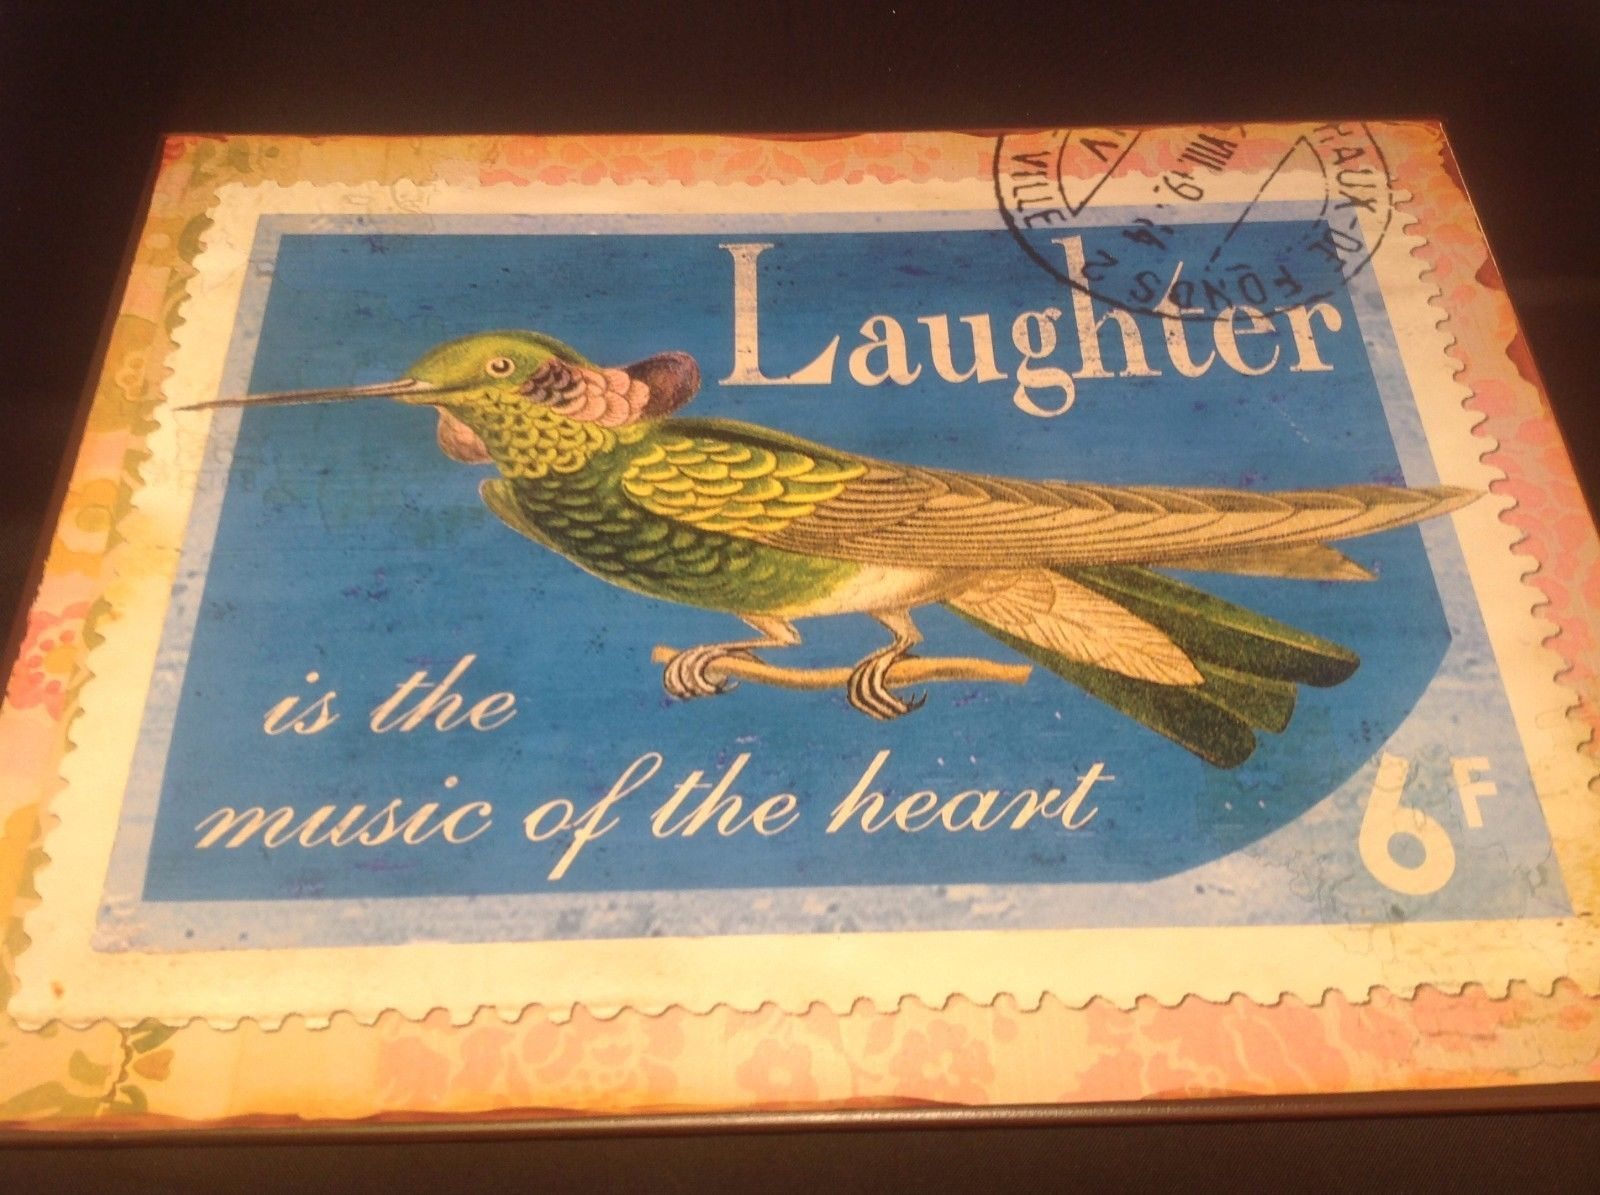 Decorative Indoor/Outdoor Metal Plaque Laughter Theme Bird With Tag New